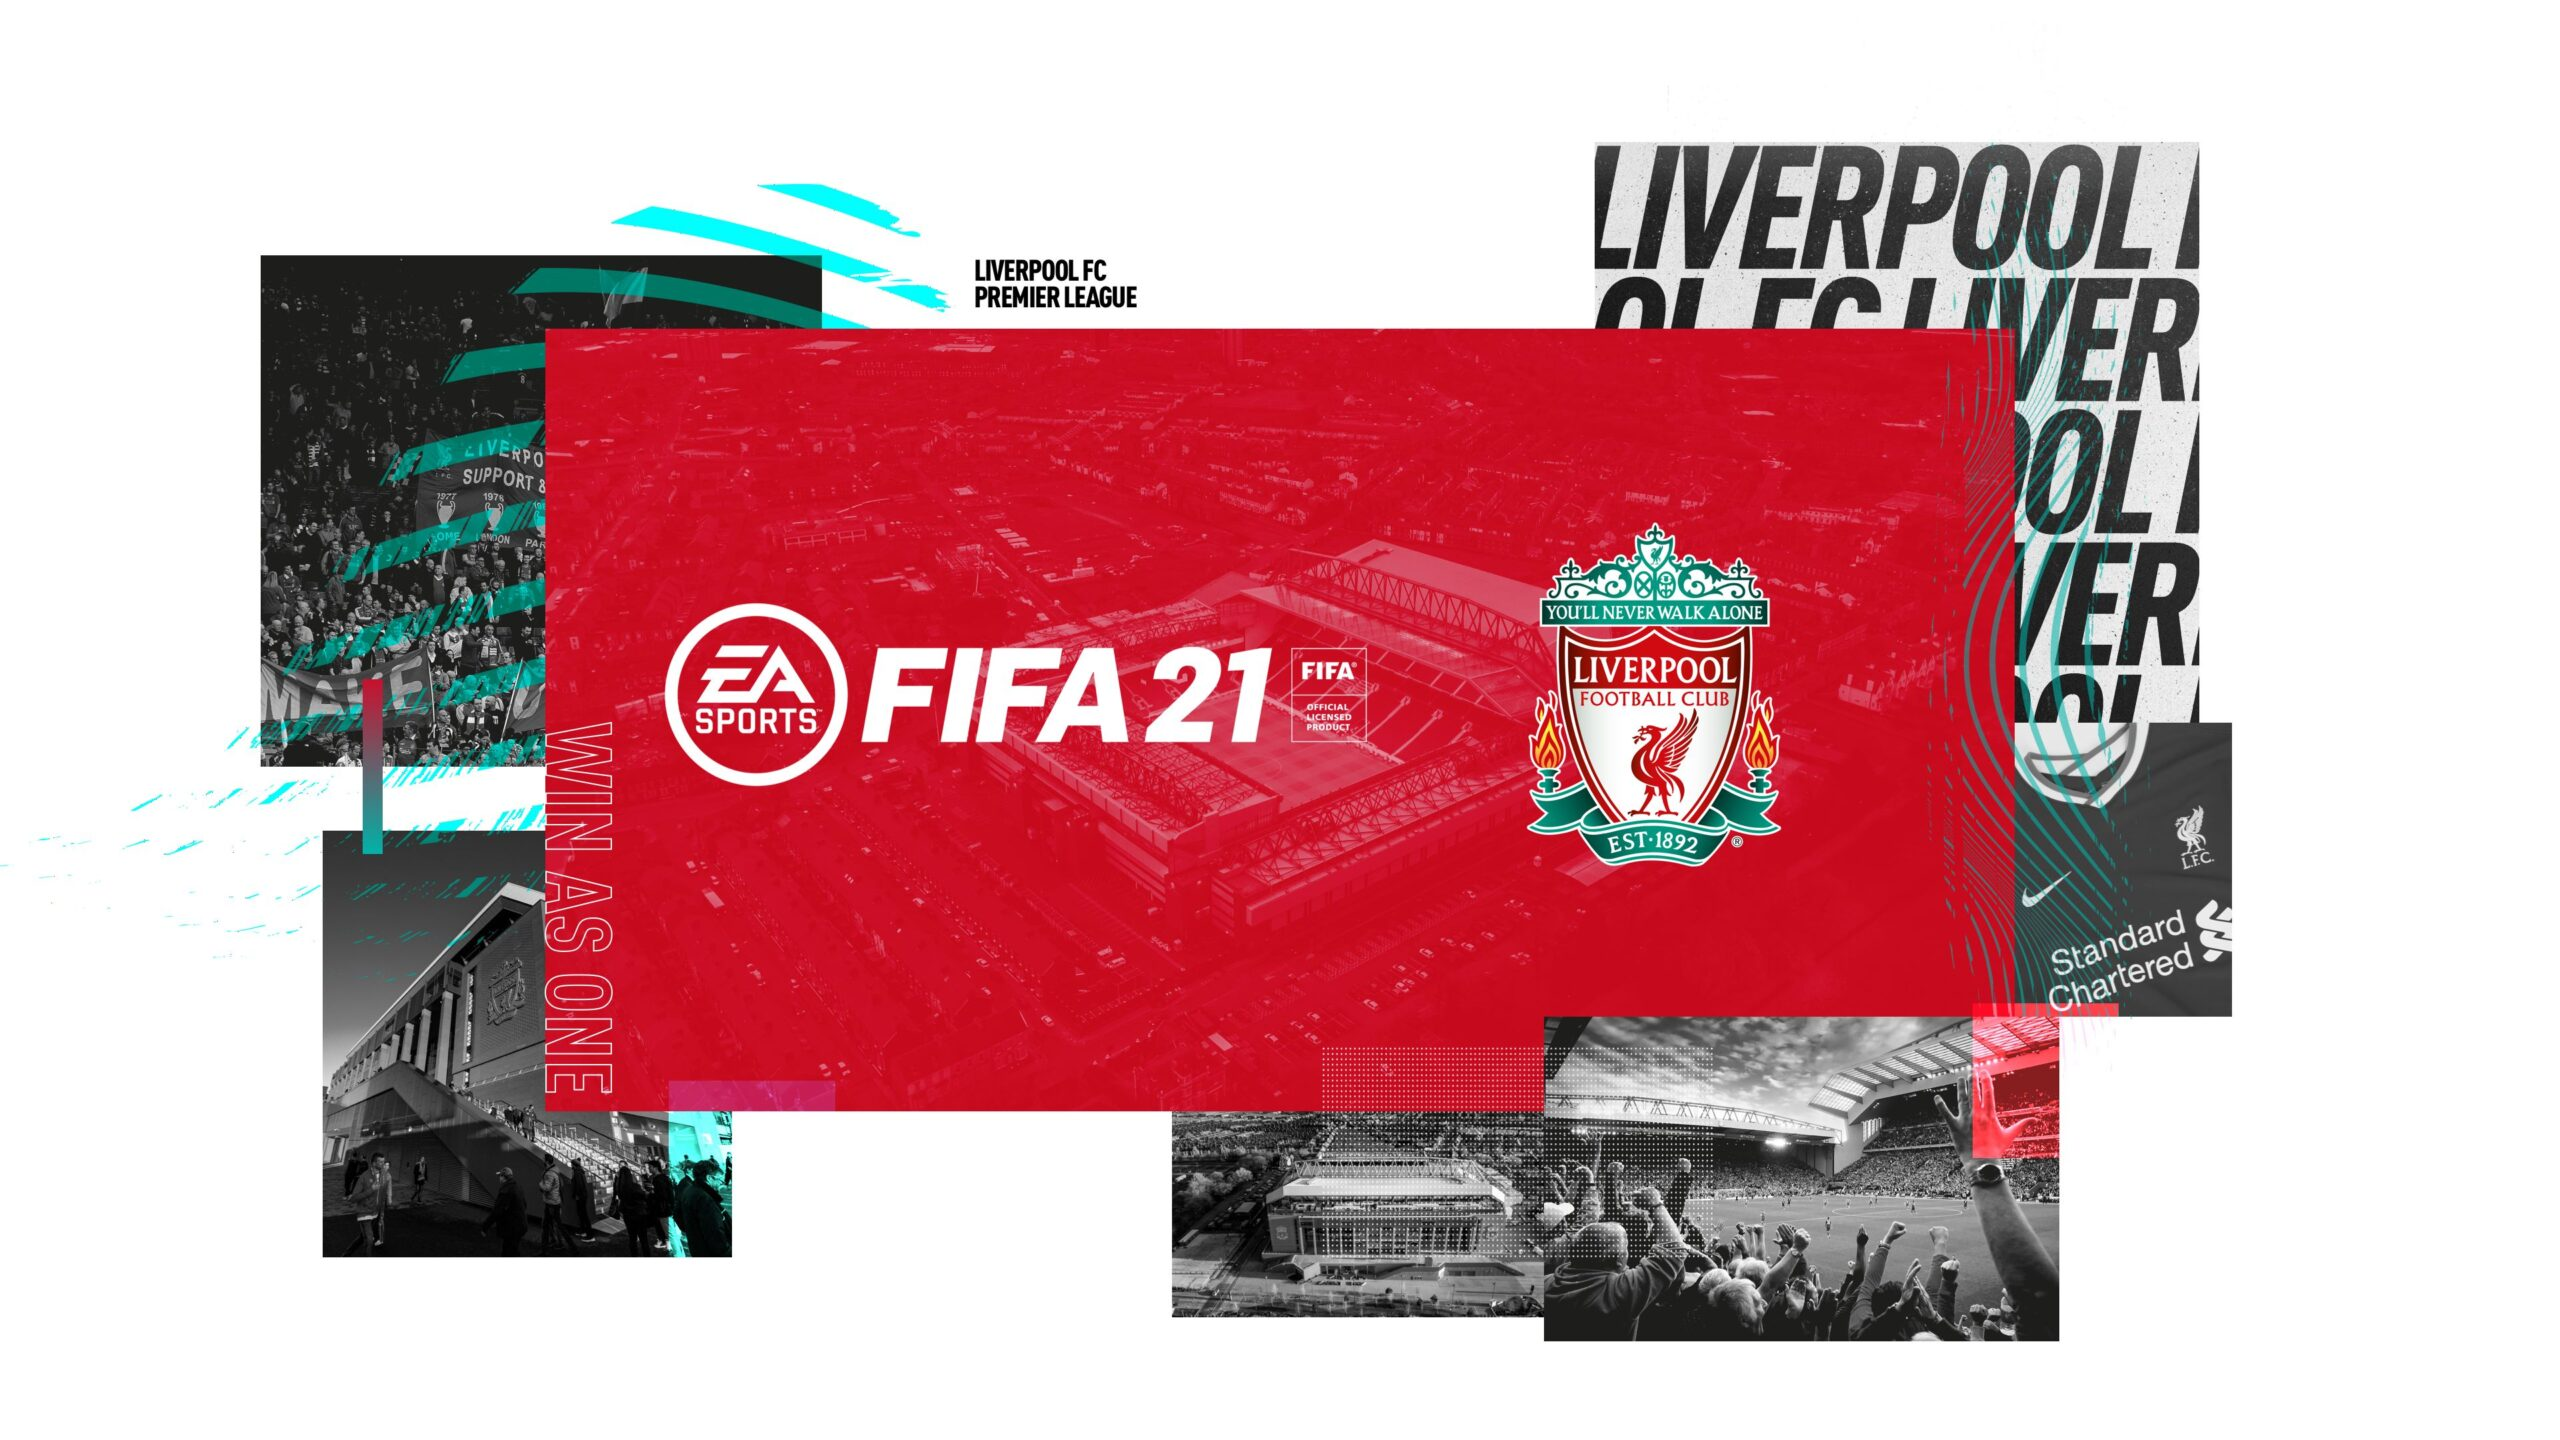 FIFA 21 Covers and Wallpapers for Premier League teams available 2560x1440